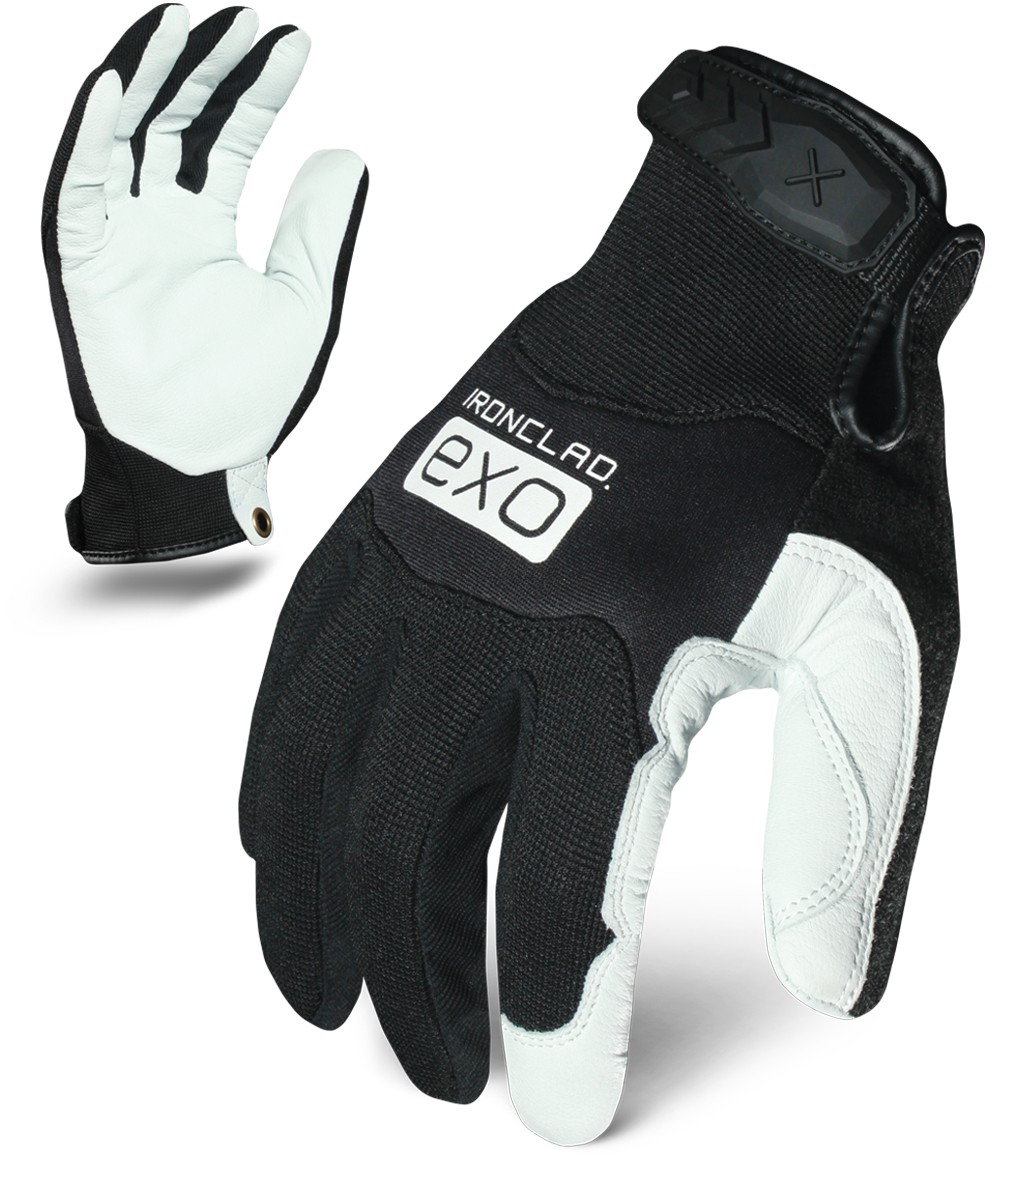 Armour Safety Products Ltd. - EXO Pro White Goat Leather